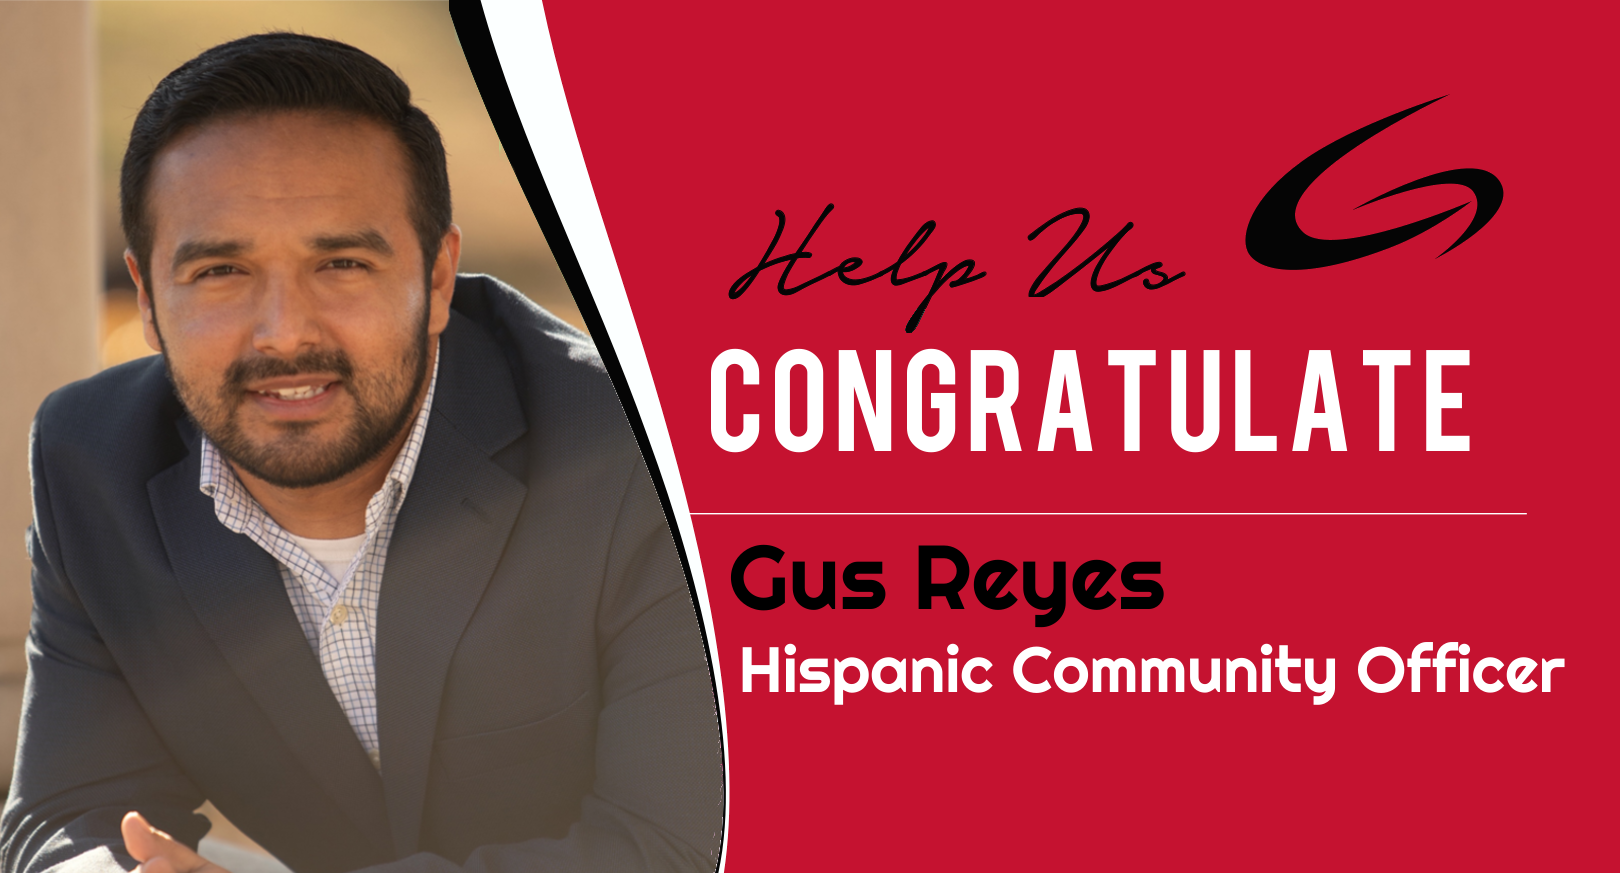 Congratulations to Gus Reyes on becoming our Hispanic Community Officer